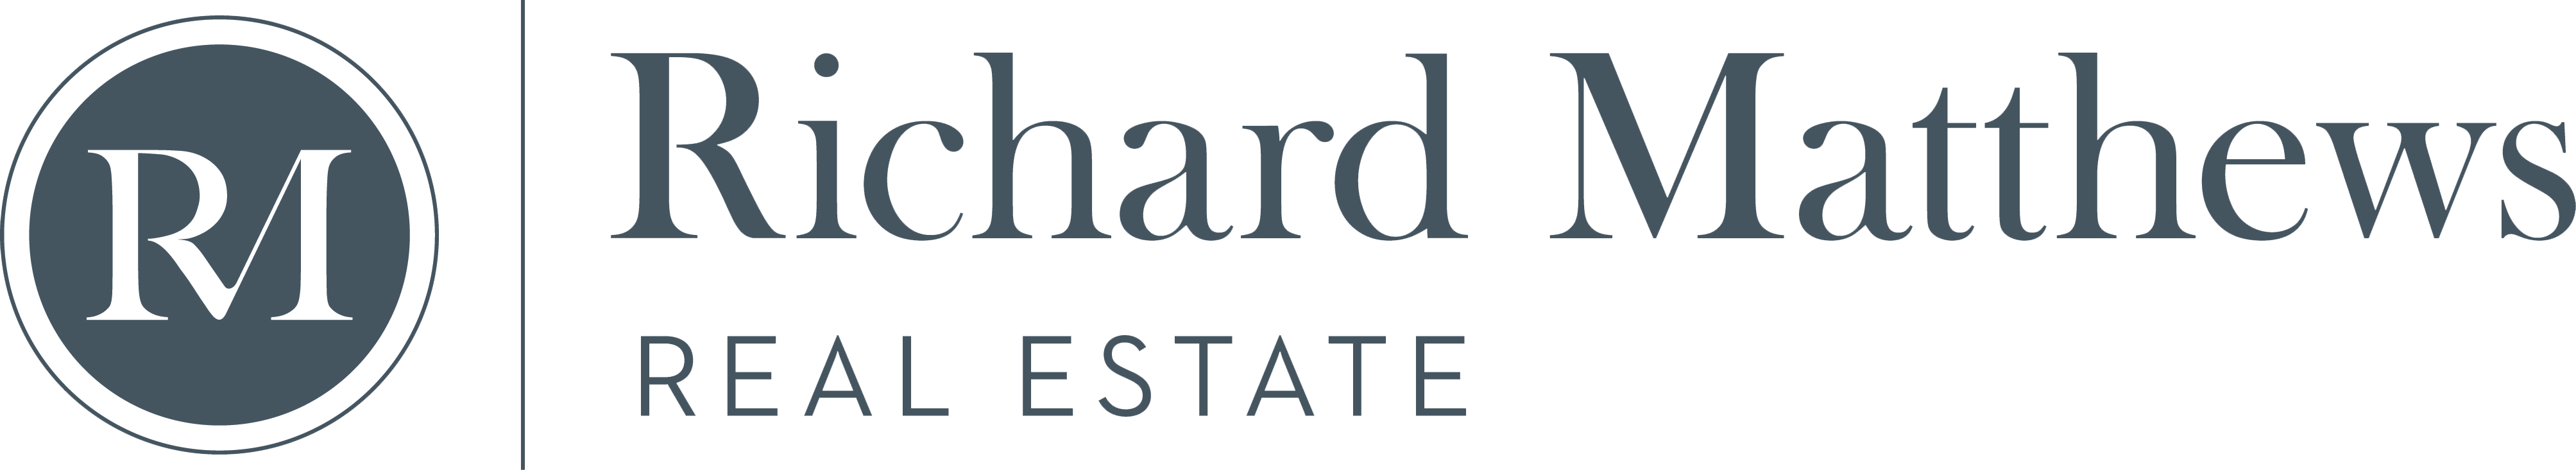 Richard Matthews Real Estate - Inner West & South West's Most Trusted Real Estate Agency. Call Now!